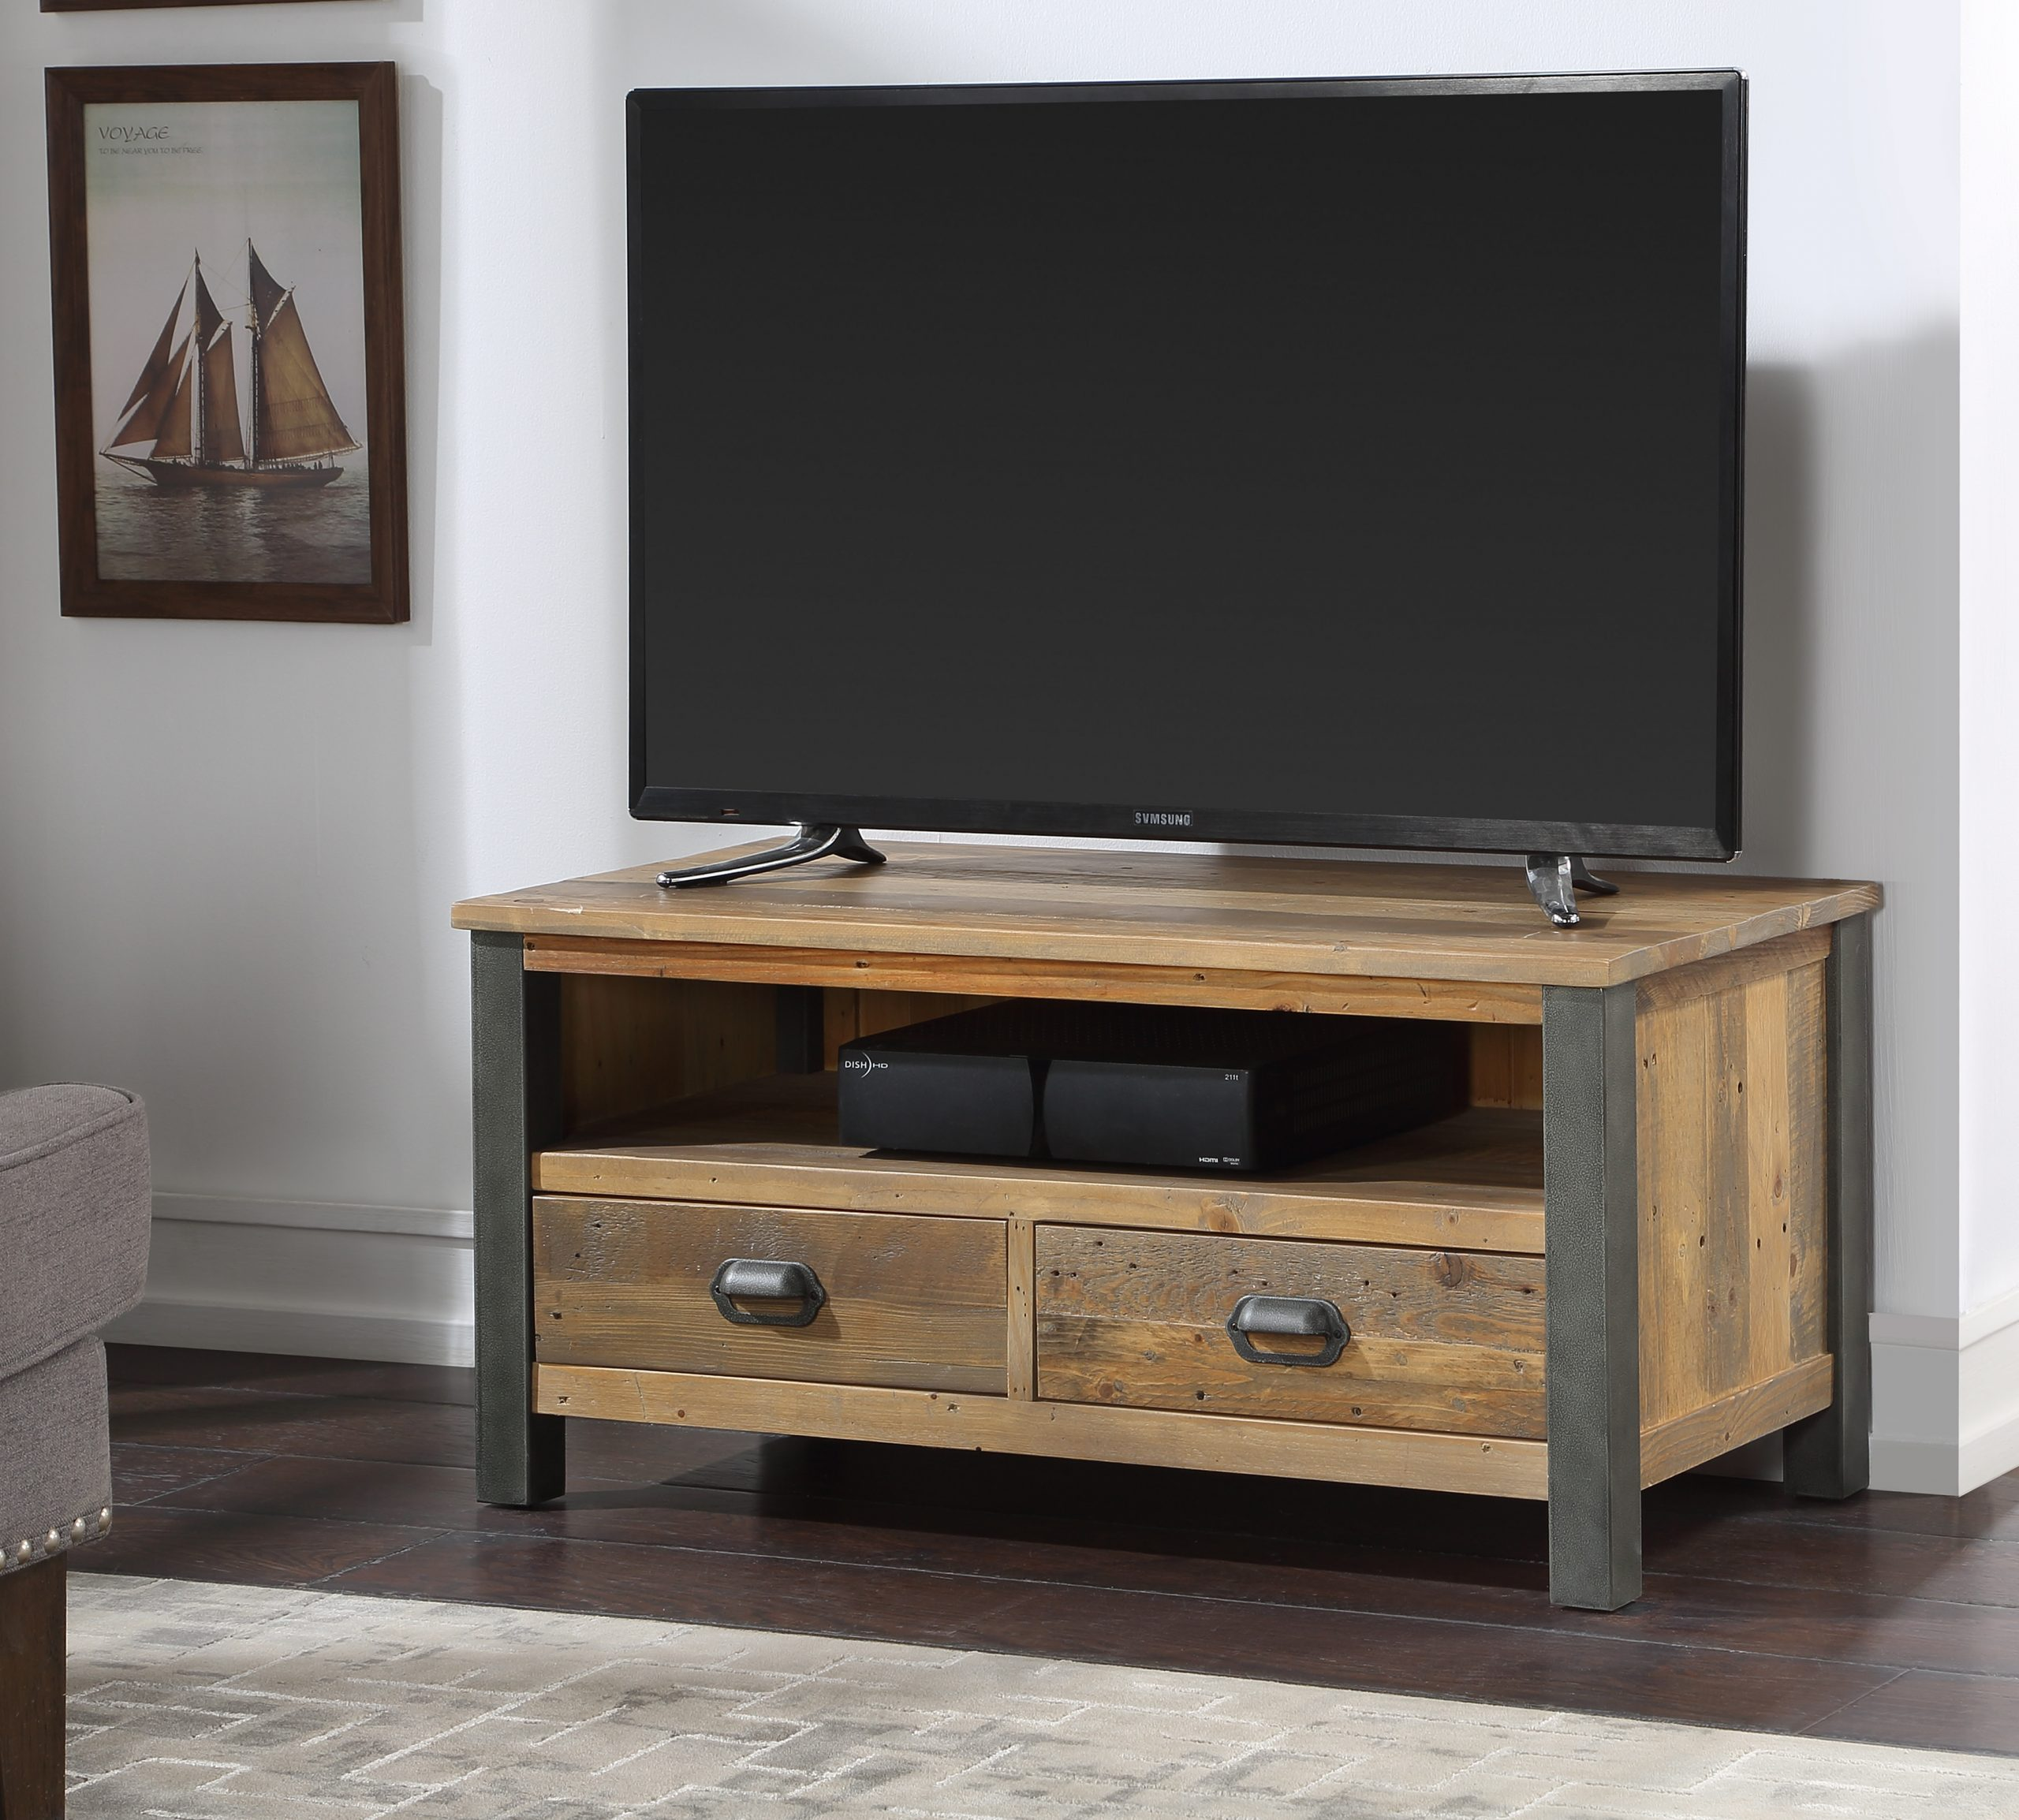 TV table with closed drawers